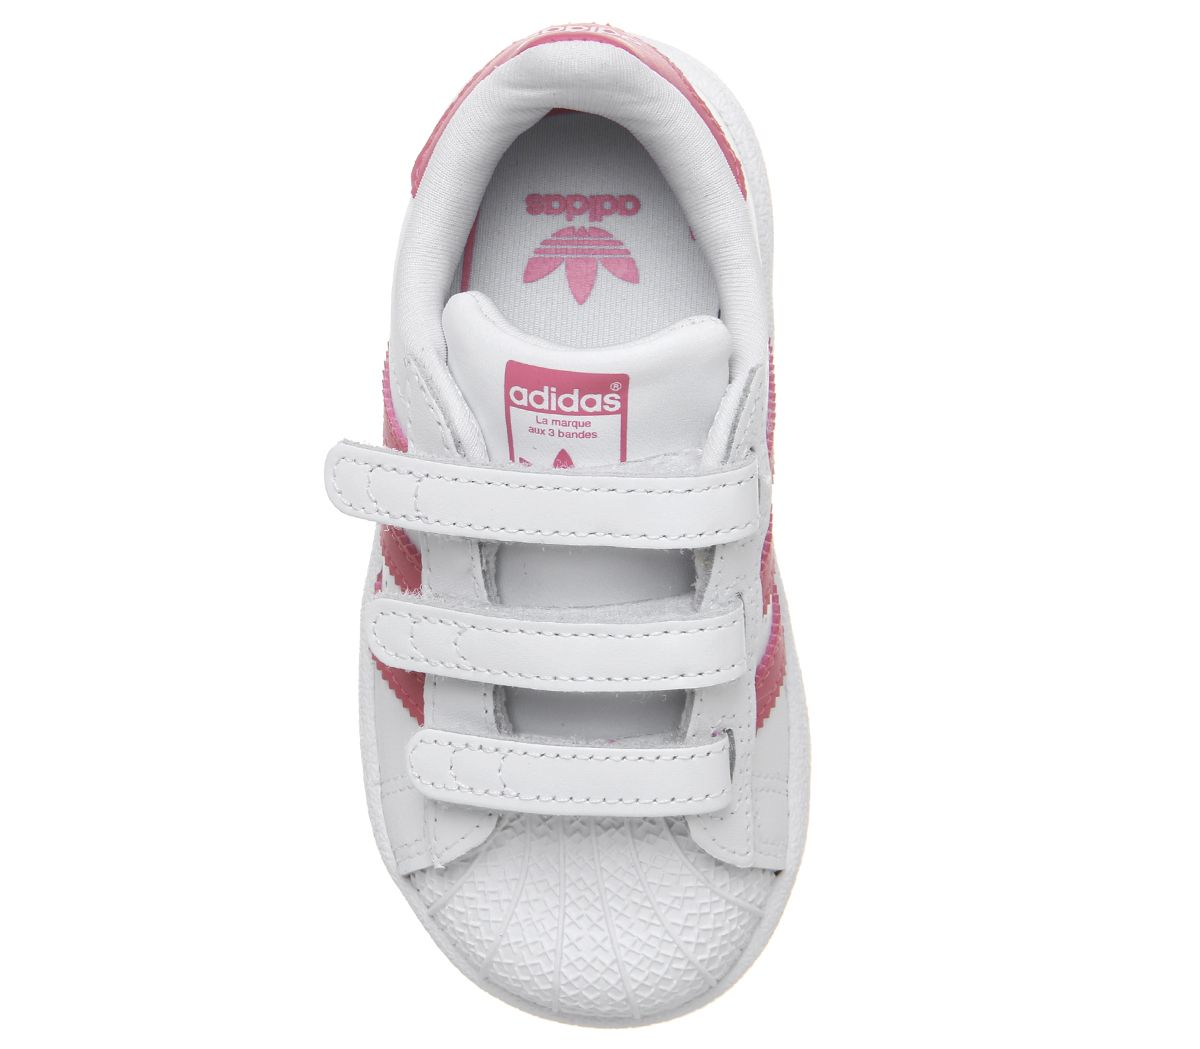 2ad9dc84b1 Kids Adidas Superstar Infant 2-9 Trainers White Clear Pink Kids | eBay